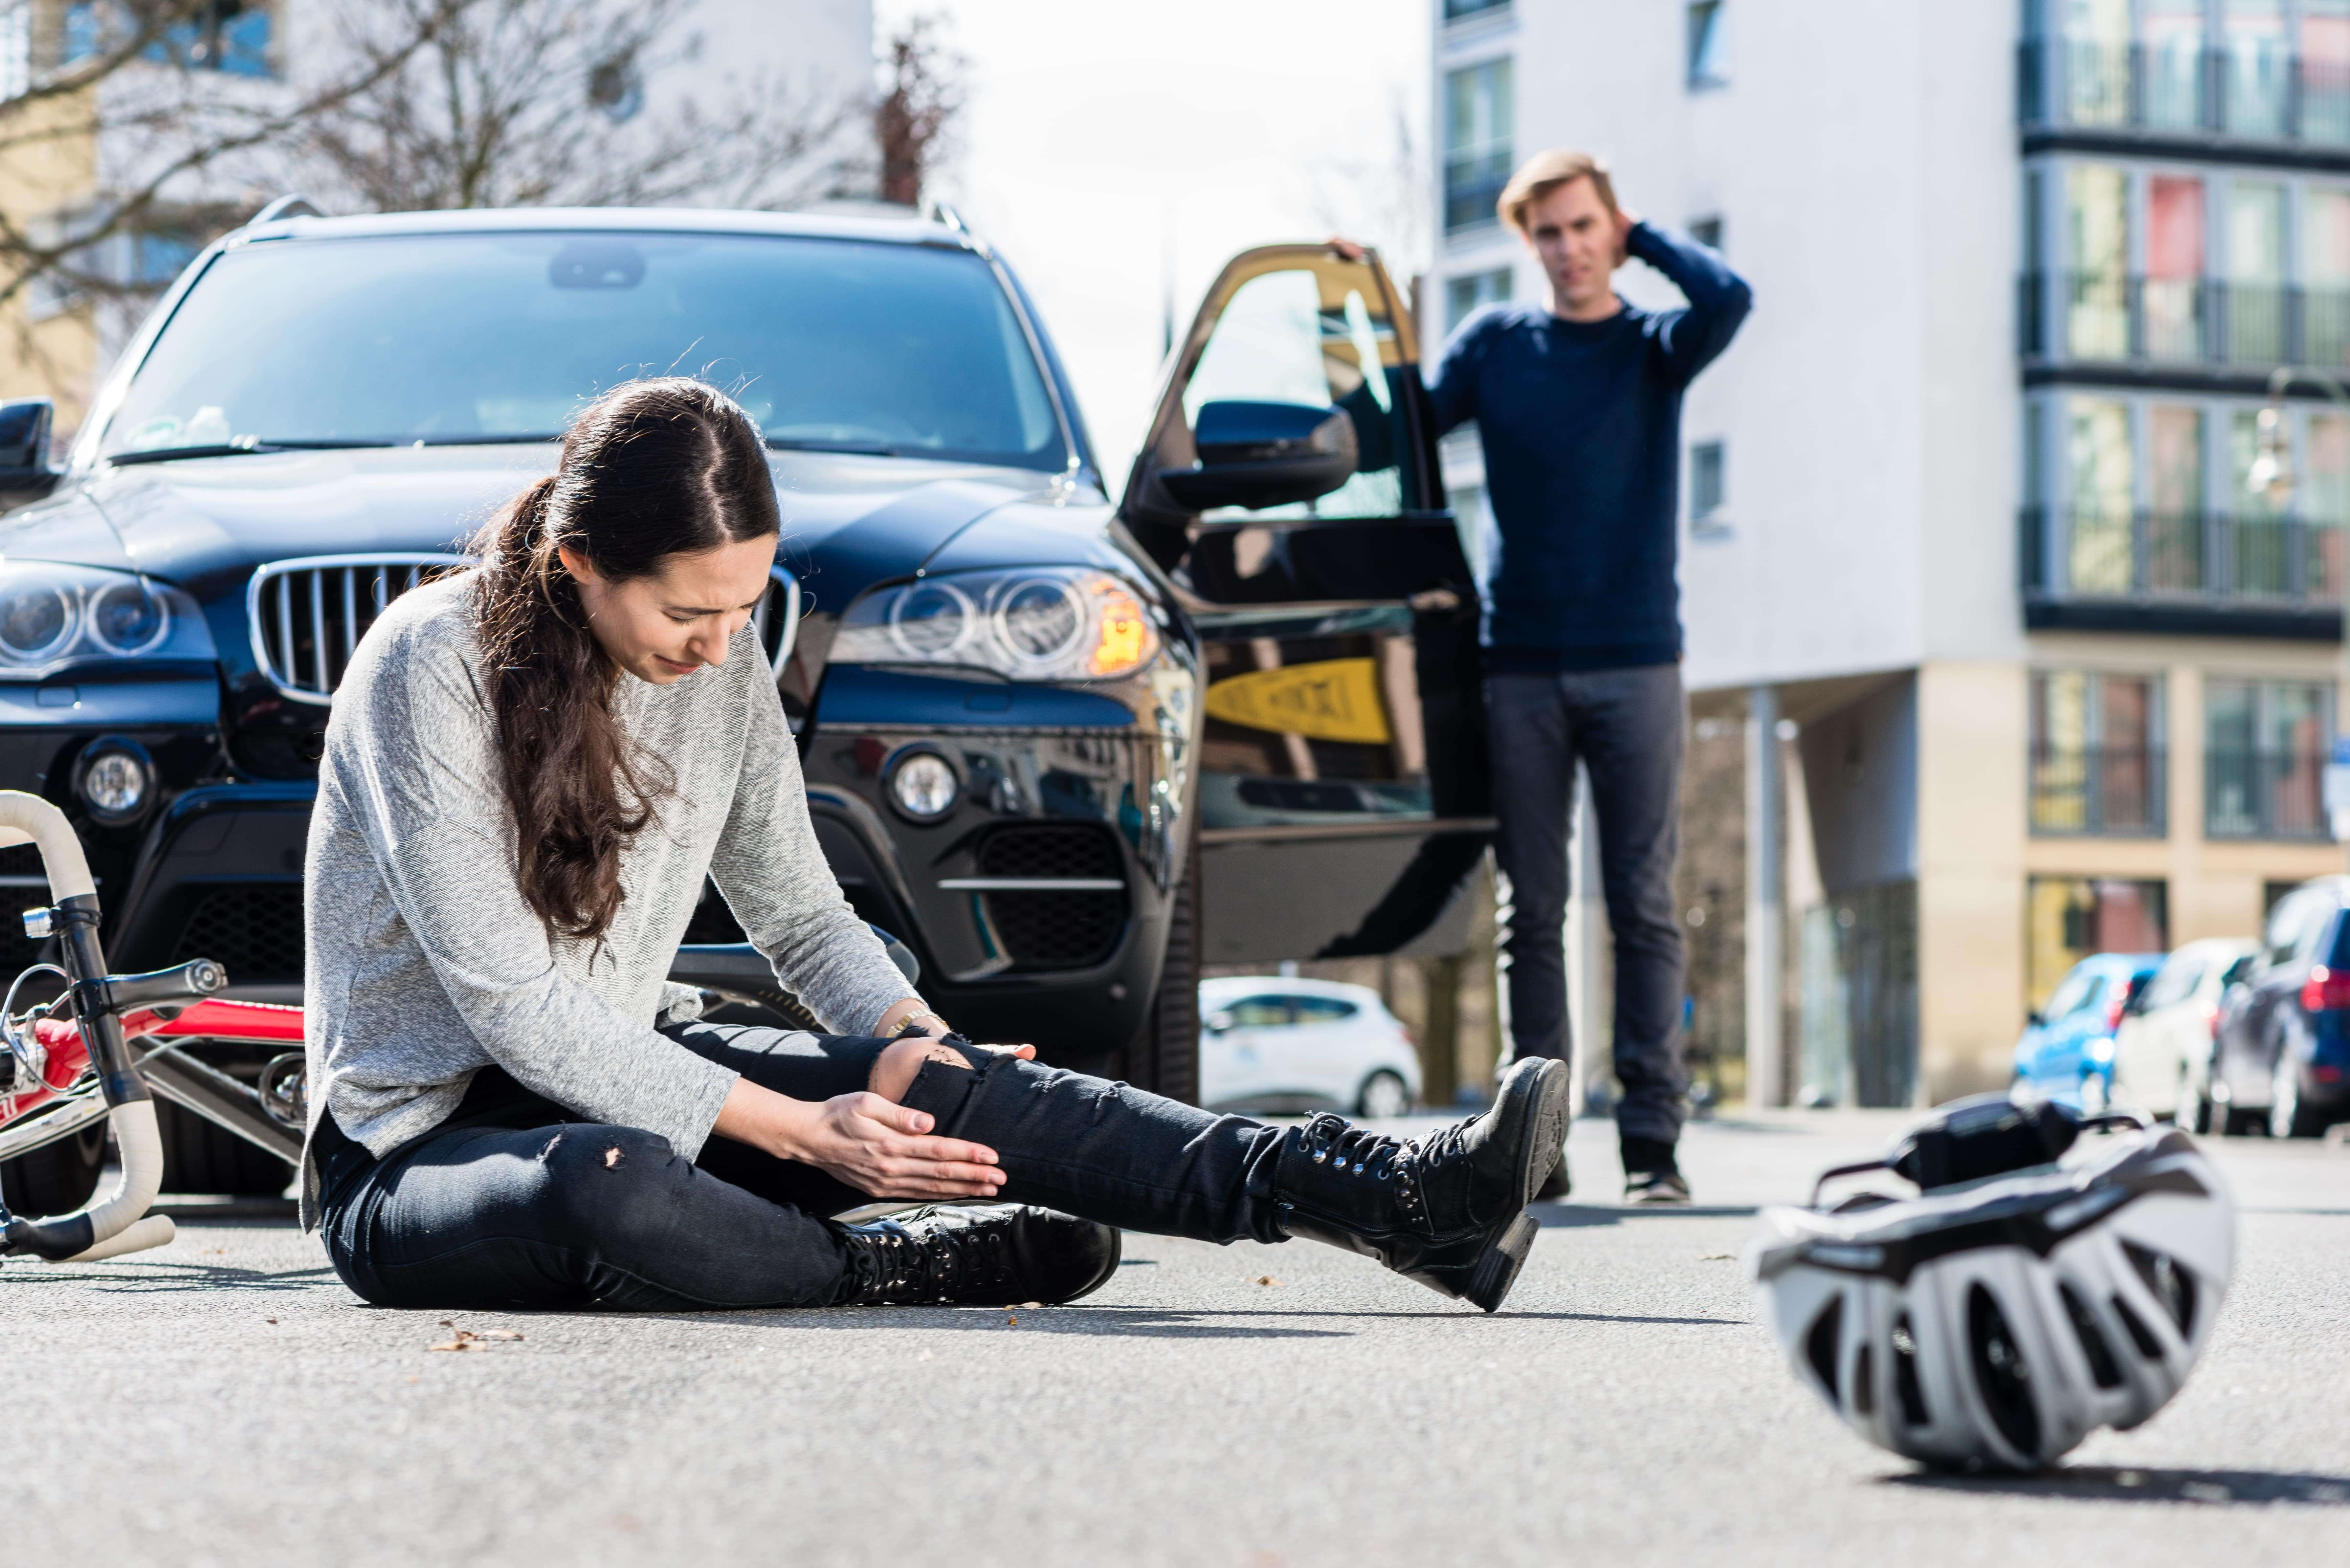 Car accident, woman knocked off bike